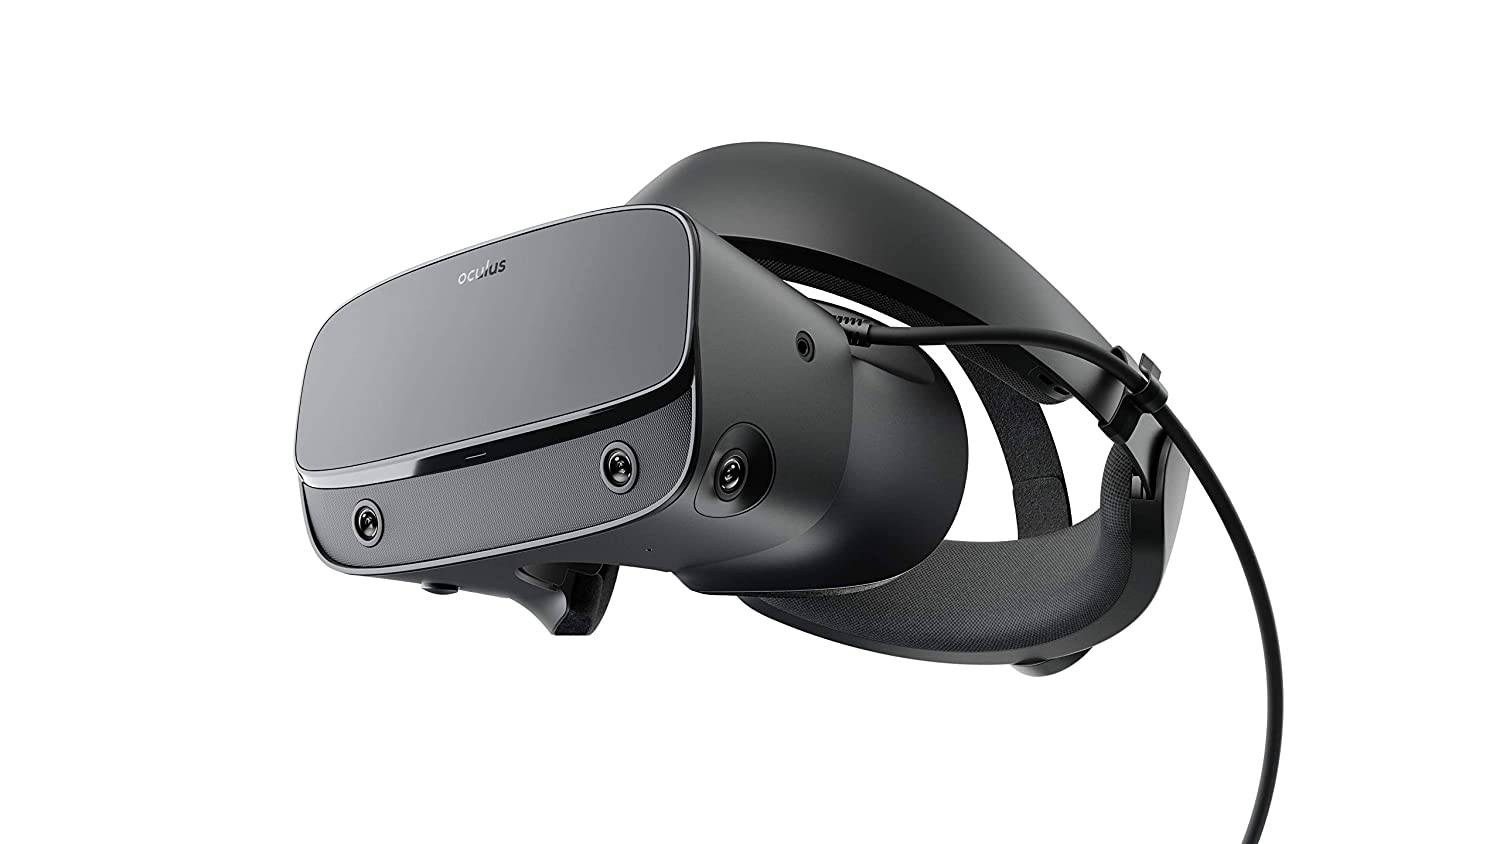 Oculus Rift S PC-Powered VR Gaming Headset: Amazon co uk: PC & Video